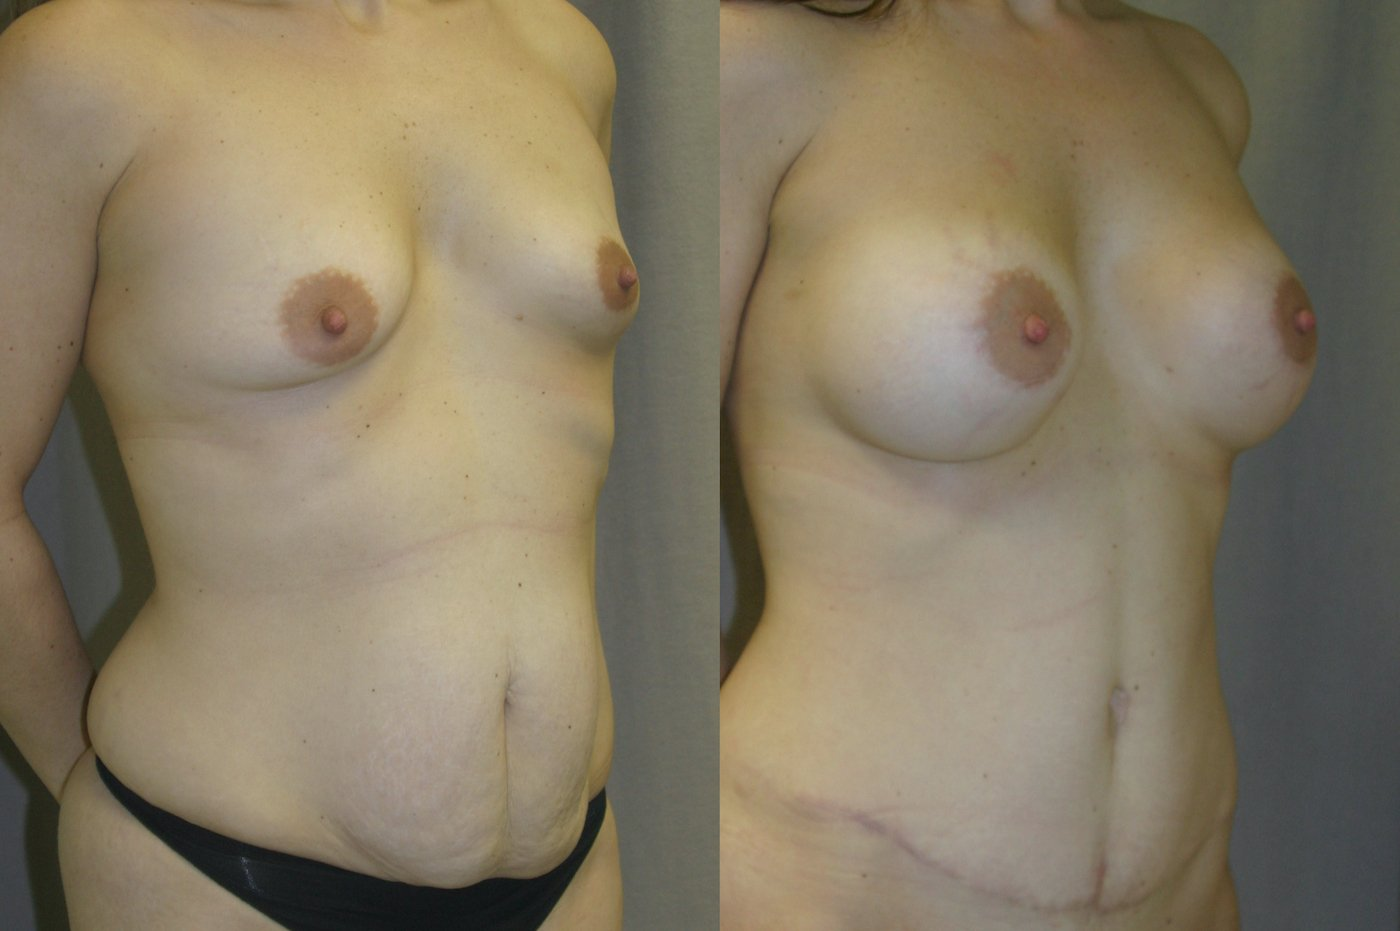 36-year-old Mommy Makover, Breast Augmentation and Tummy Tuck 6 months after surgery, oblique view